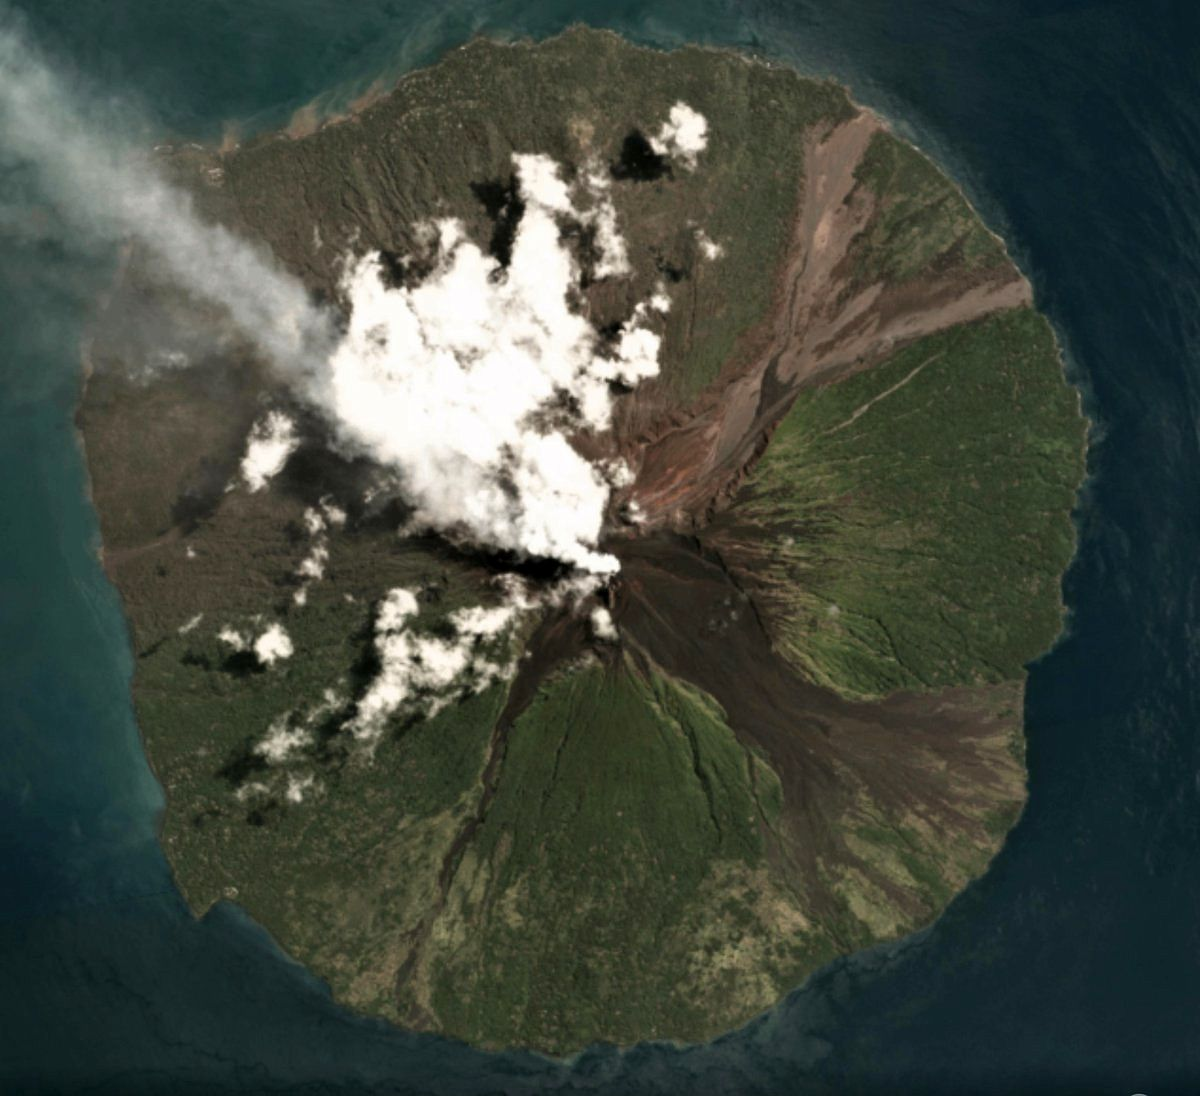 Manam - post-eruption image of 27.08.2018 shows the area affected by the PDCs of 25.08 (grayer) - Image Copyright 2018 Planet Labs Inc.